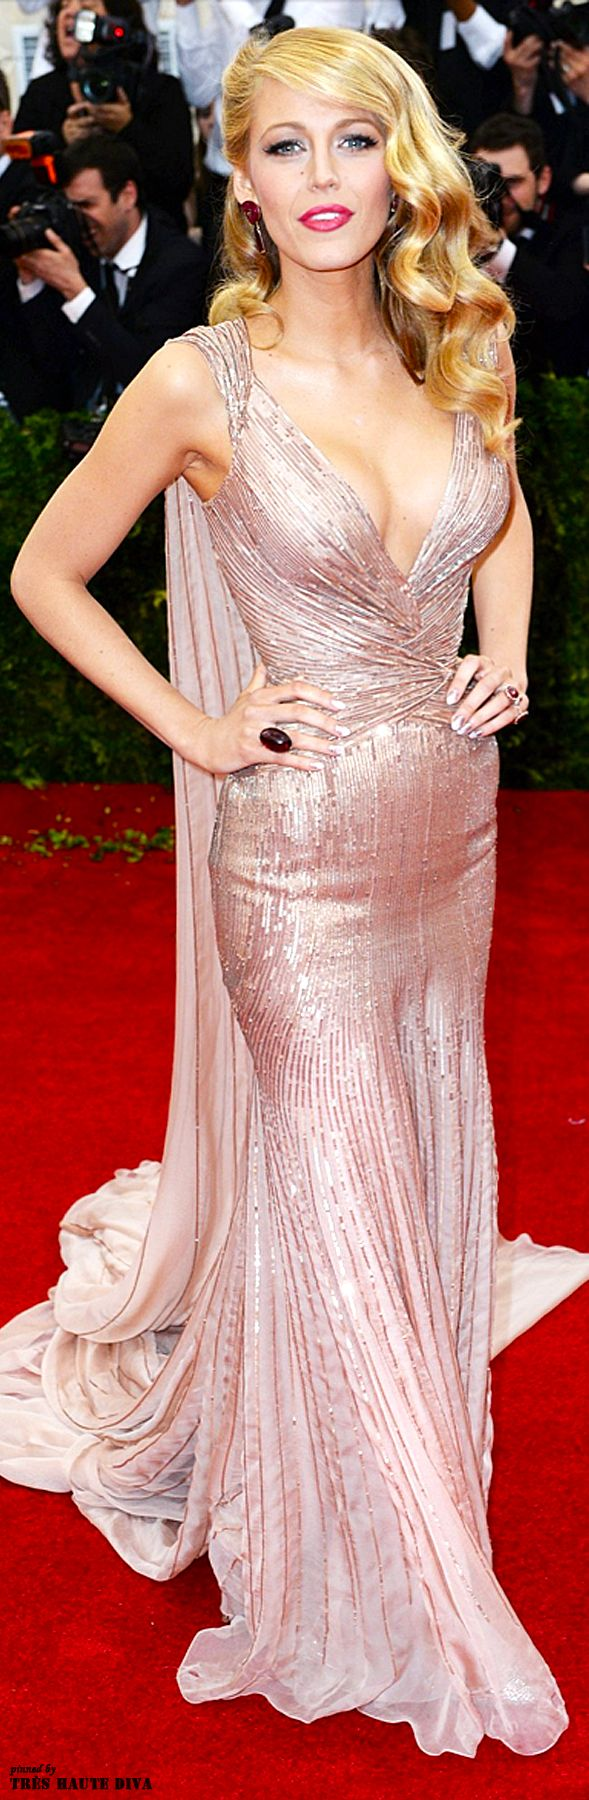 Modern Goddess / karen cox. Blake Lively wore a custom-made Gucci ...